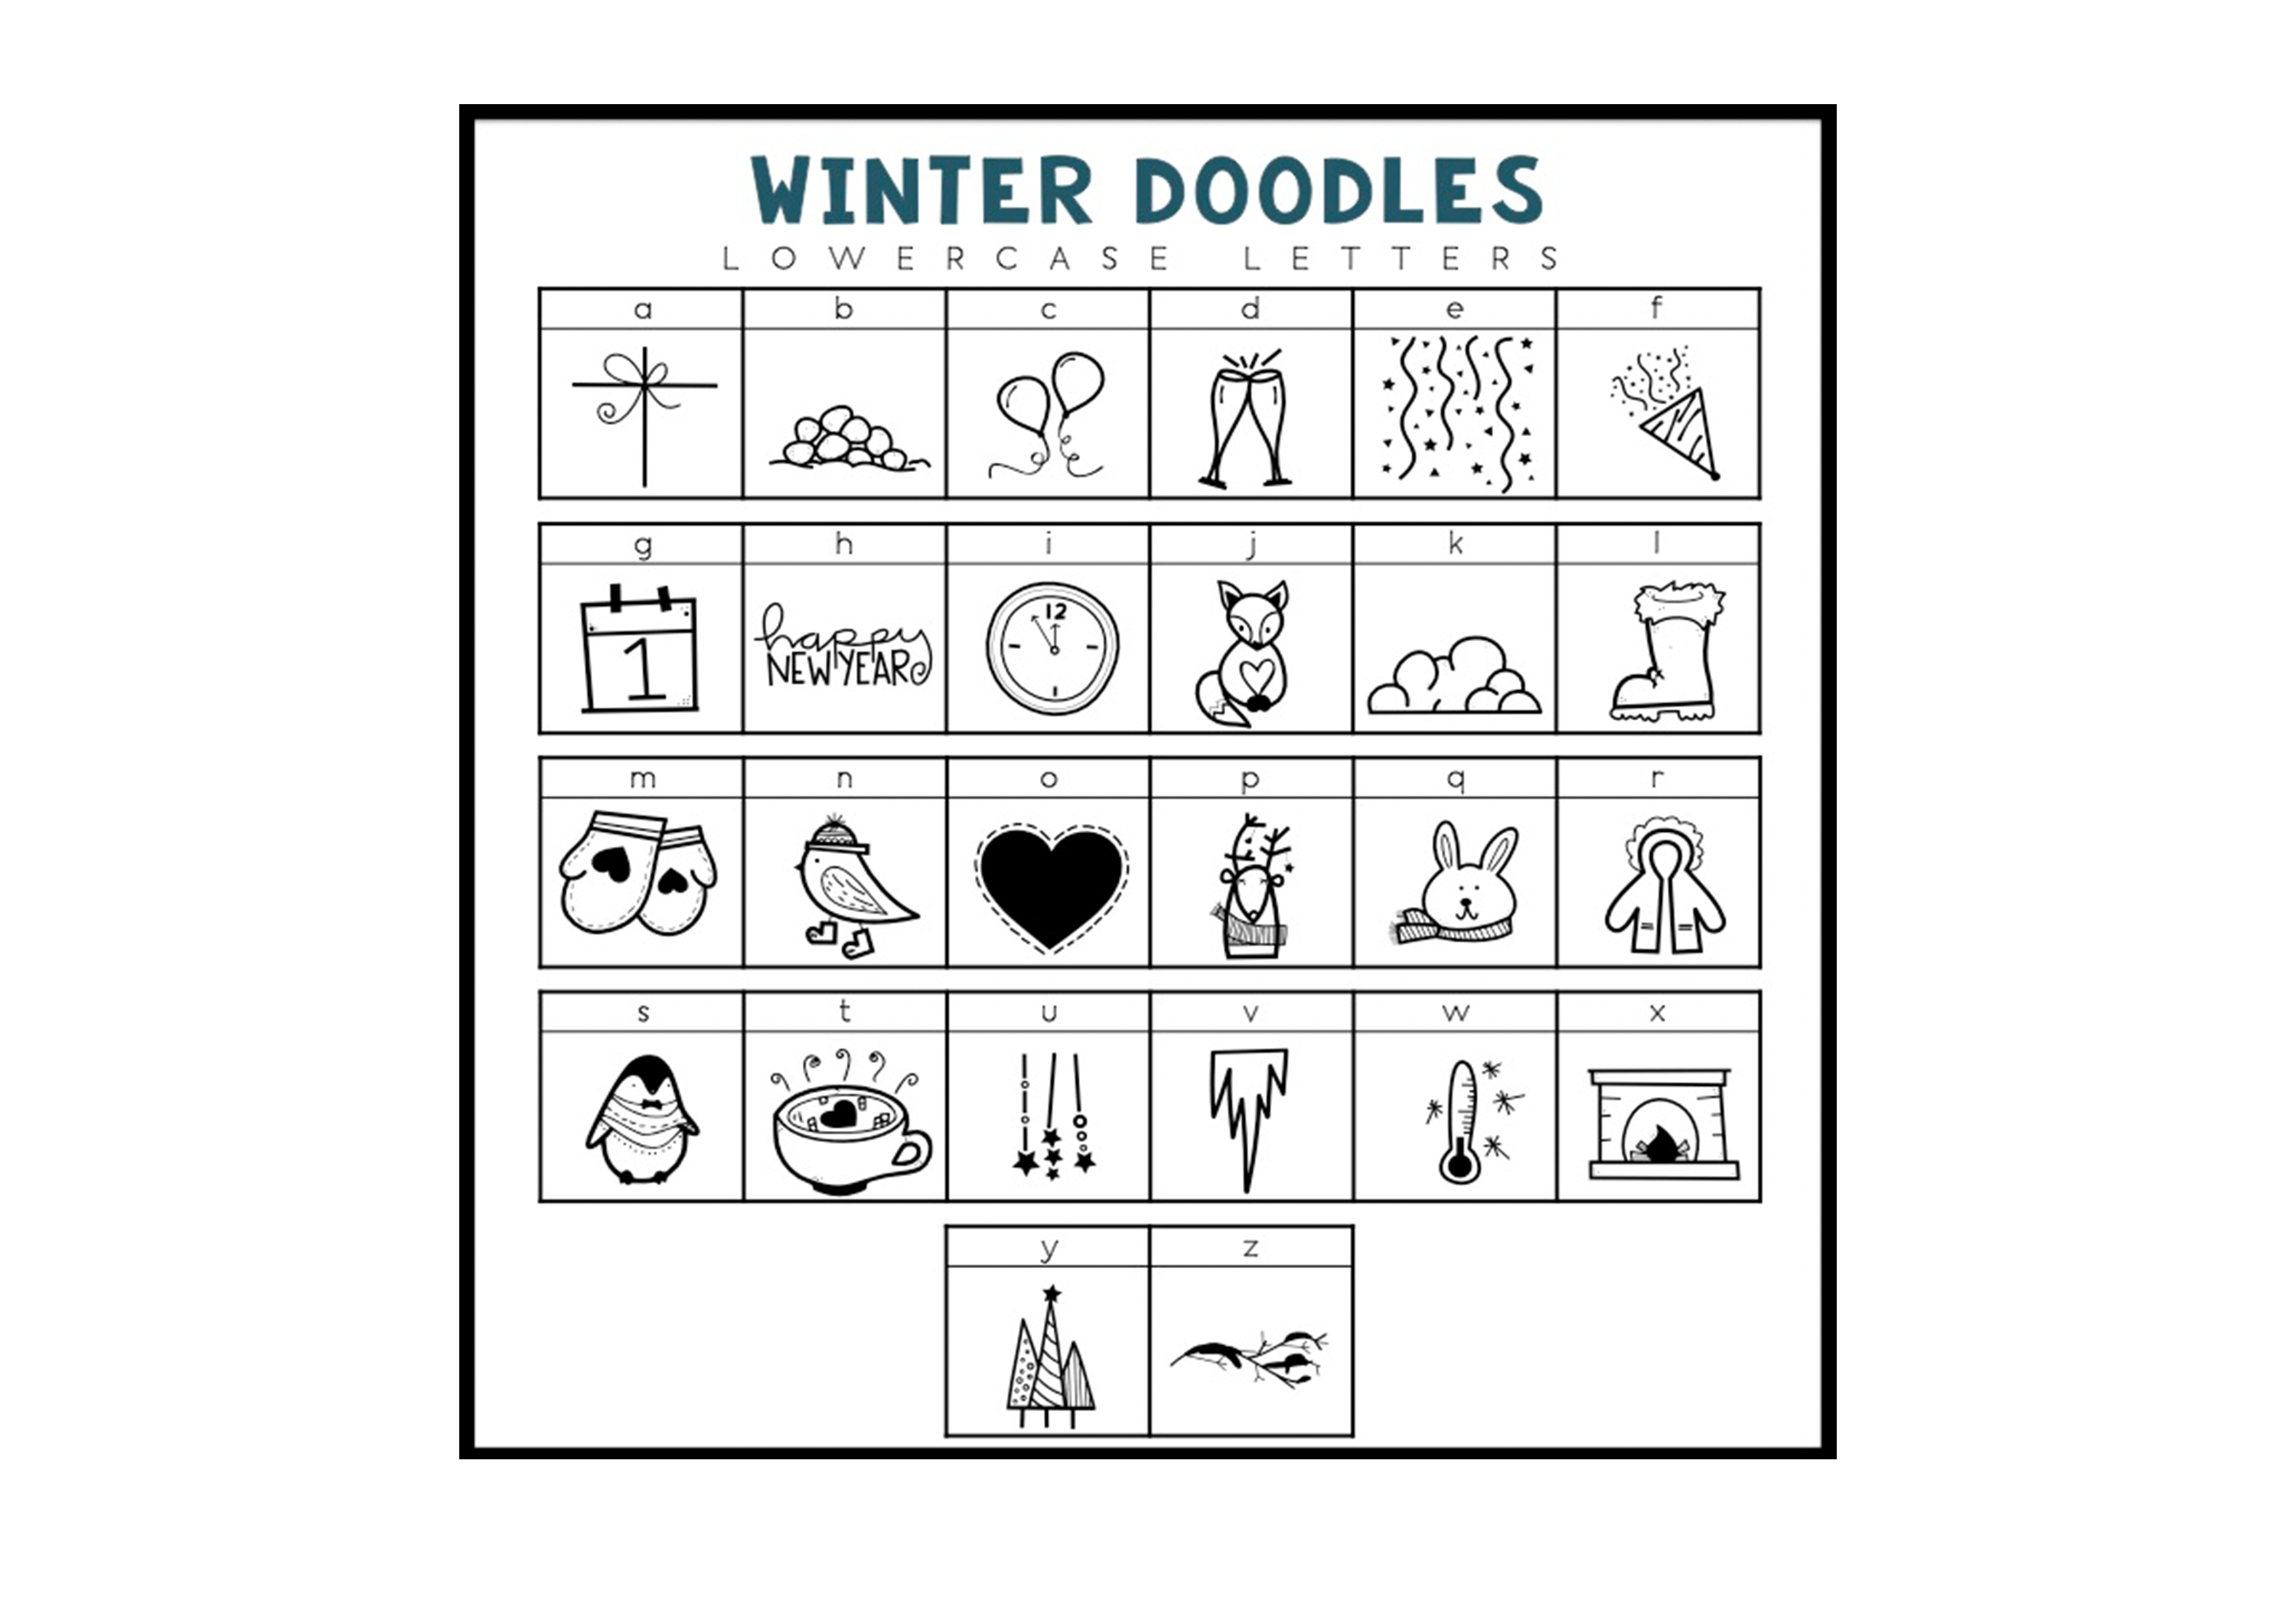 Winter Wishes - A Winter Doodles Font example image 2